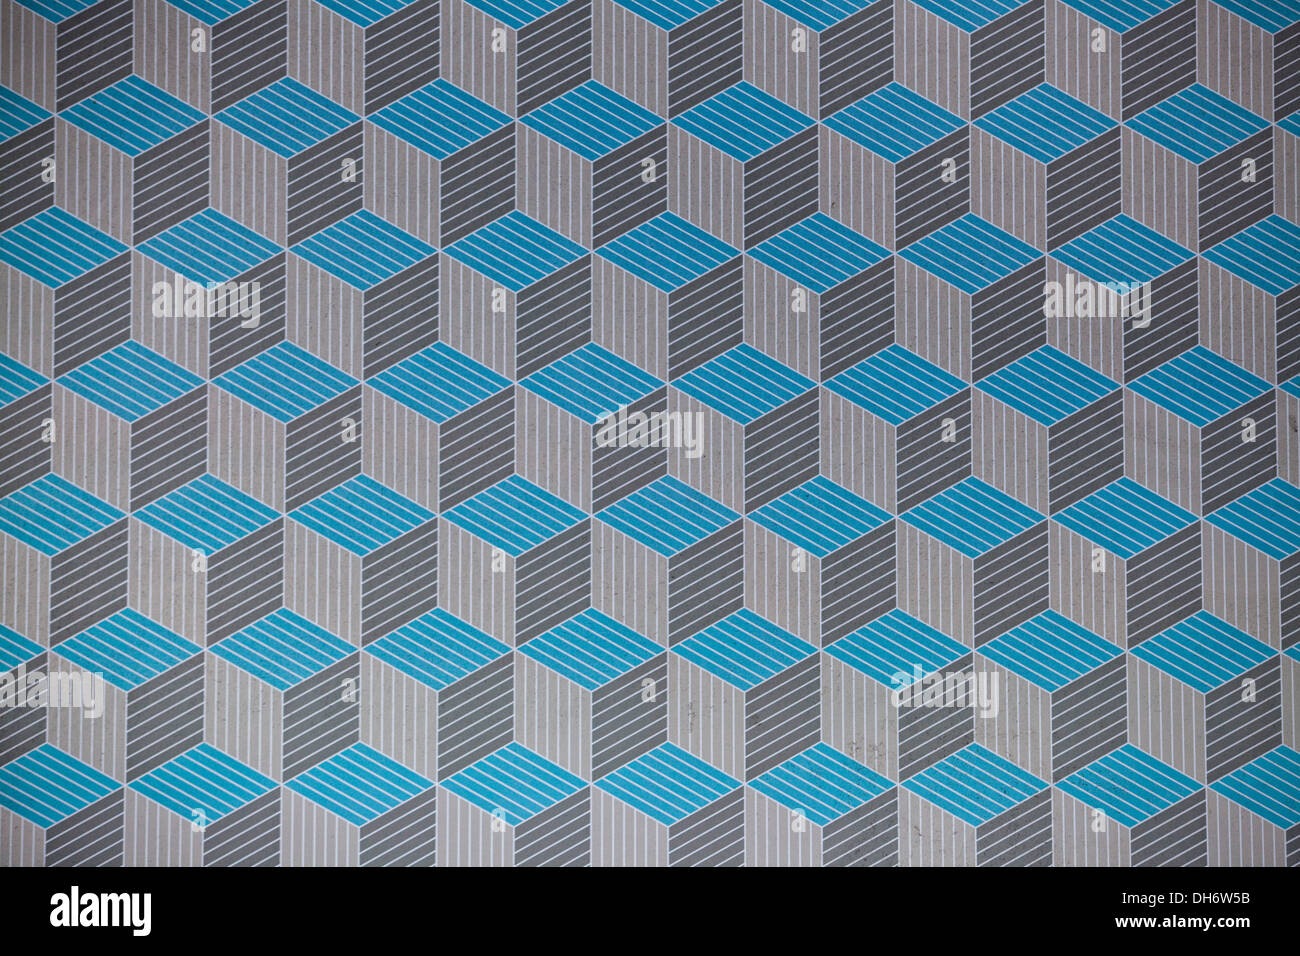 Three Dimensional Square Patterns Blue and Silver - Stock Image